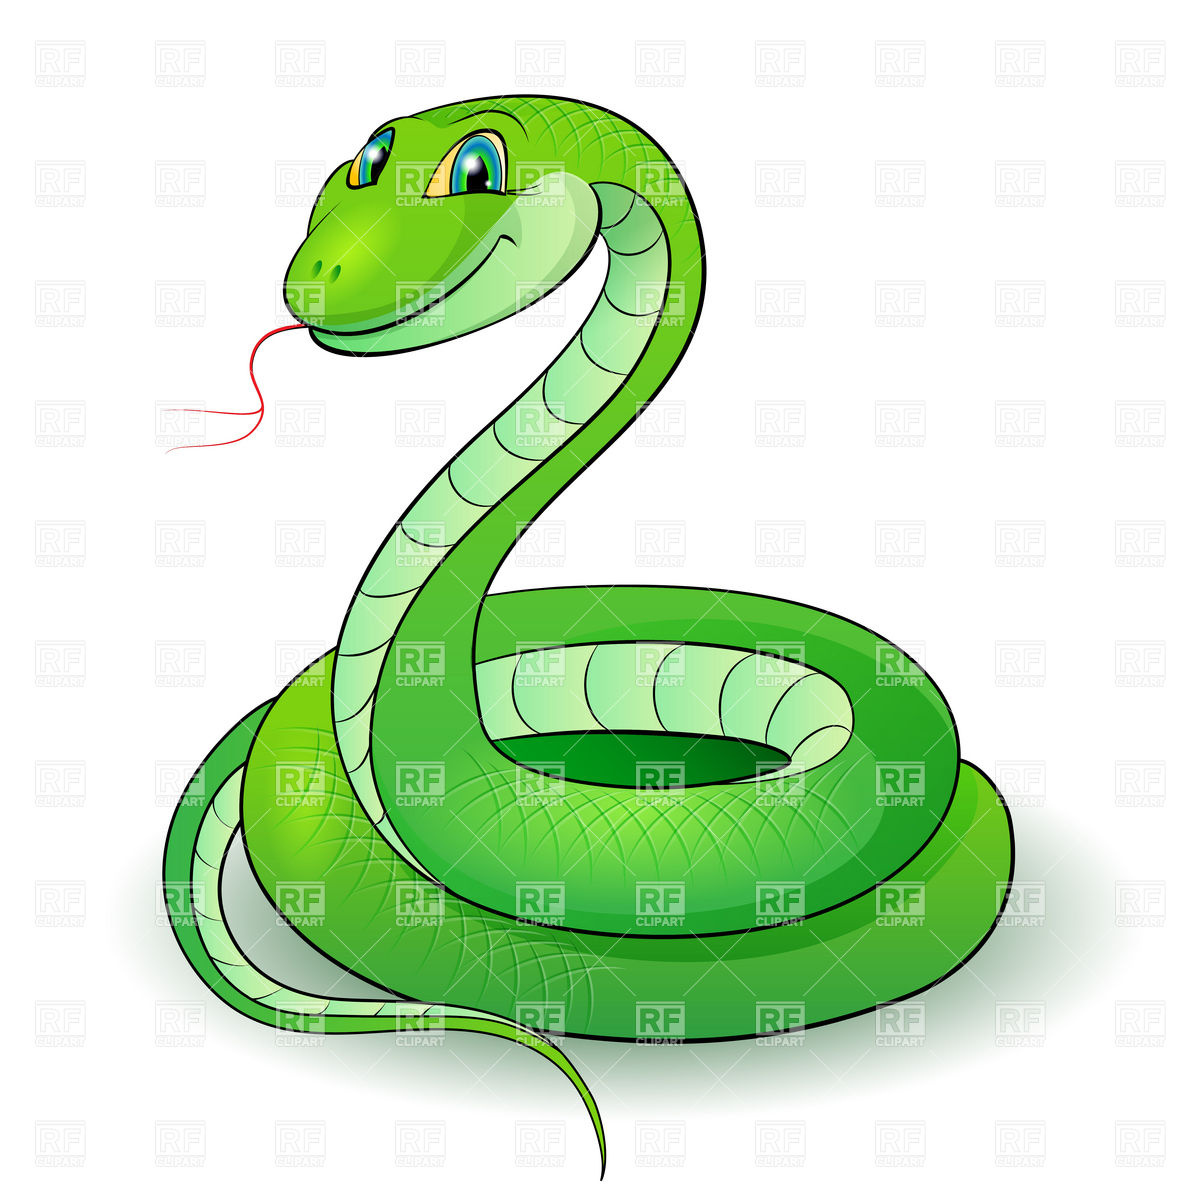 Traditional clipart 3eyed snake image free download Traditional clipart 3eyed snake - ClipartFest image free download